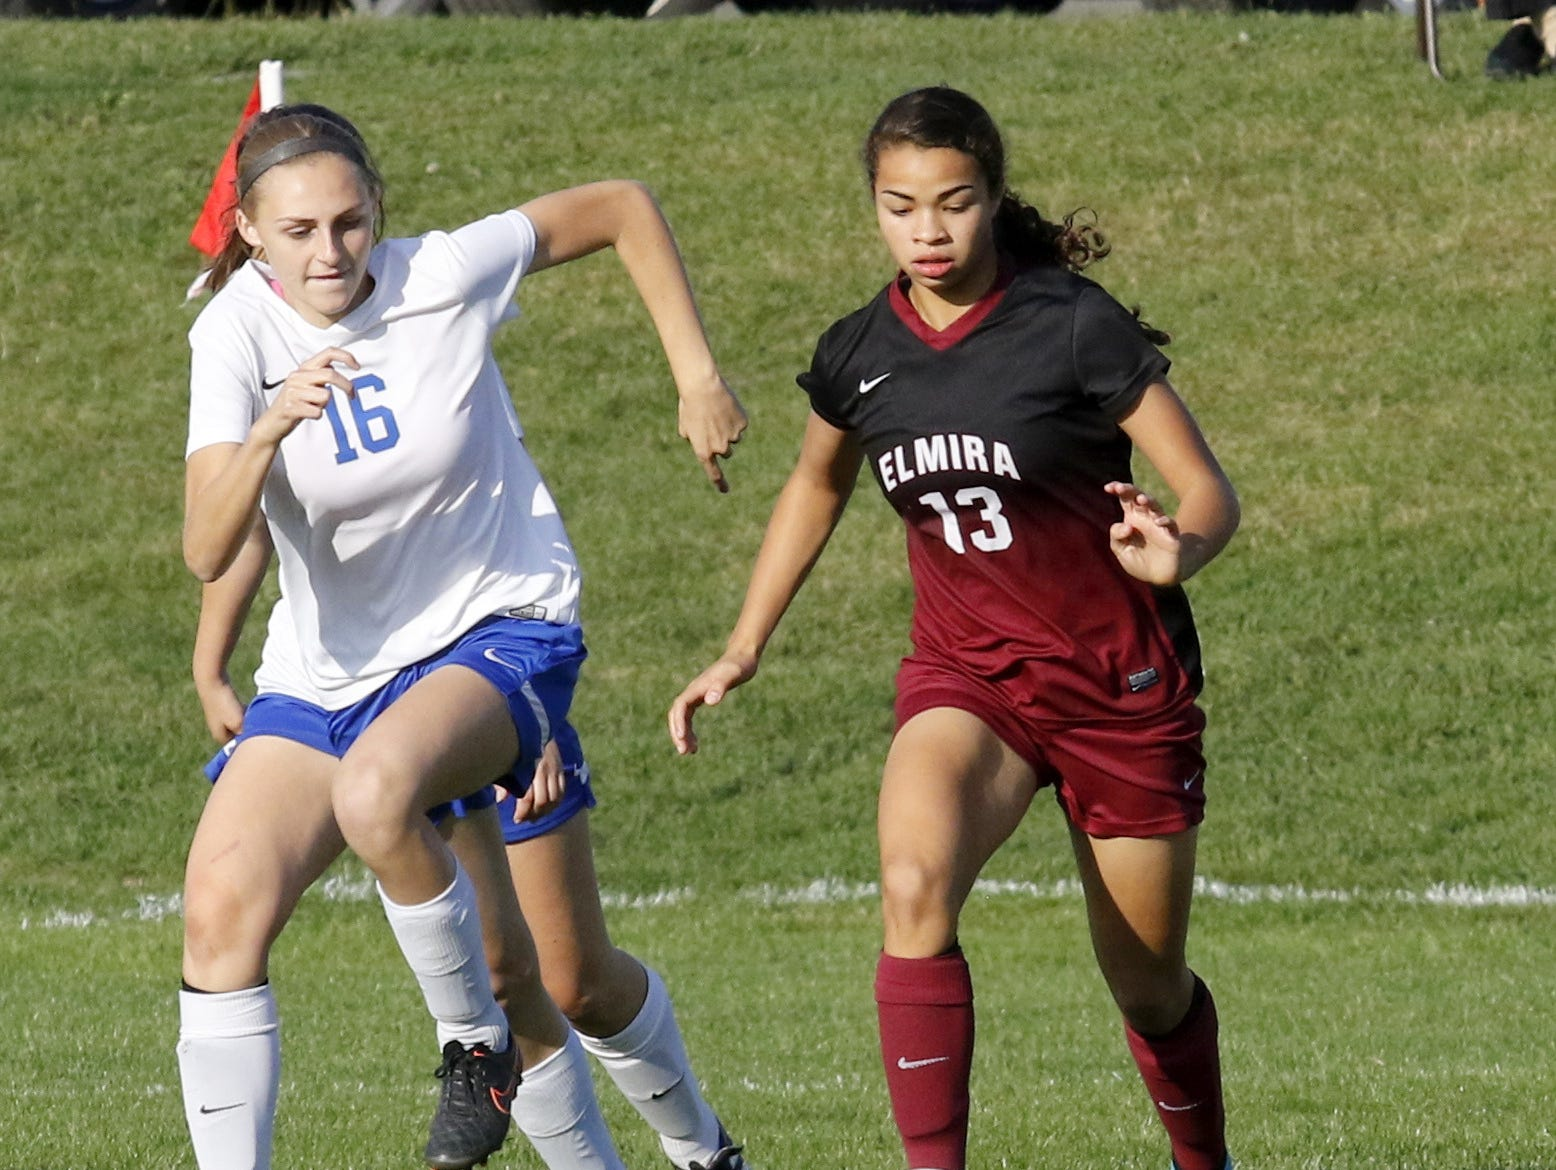 Kendra Oldroyd of Elmira controls the ball as Emily Leland of Horseheads defends Thursday during the teams' 1-1 girls soccer tie at Horseheads.